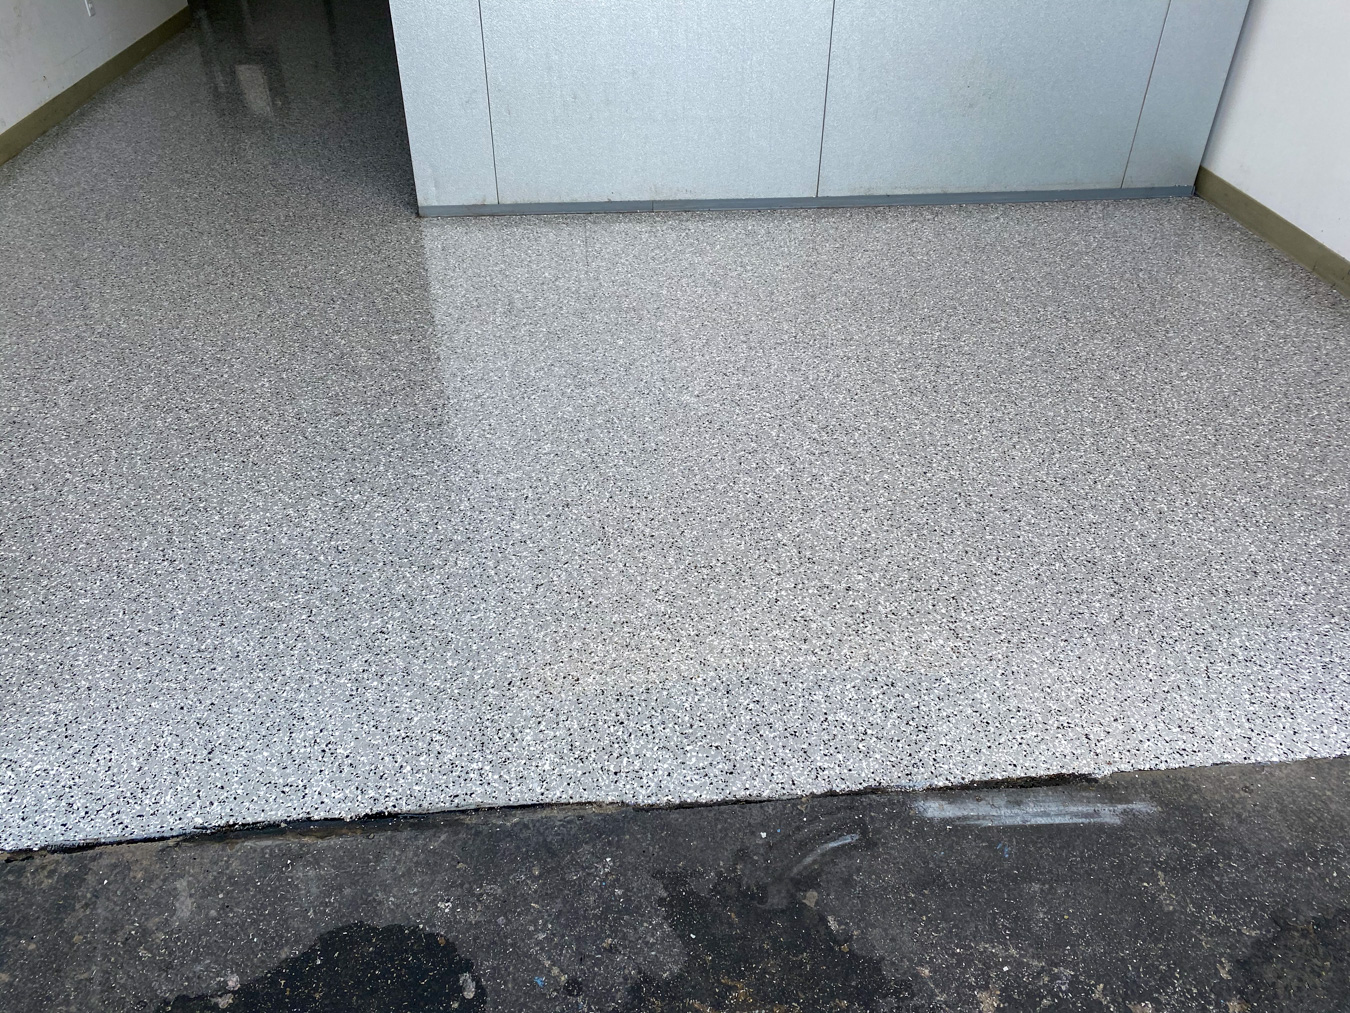 commercial flooring after epoxy coating process